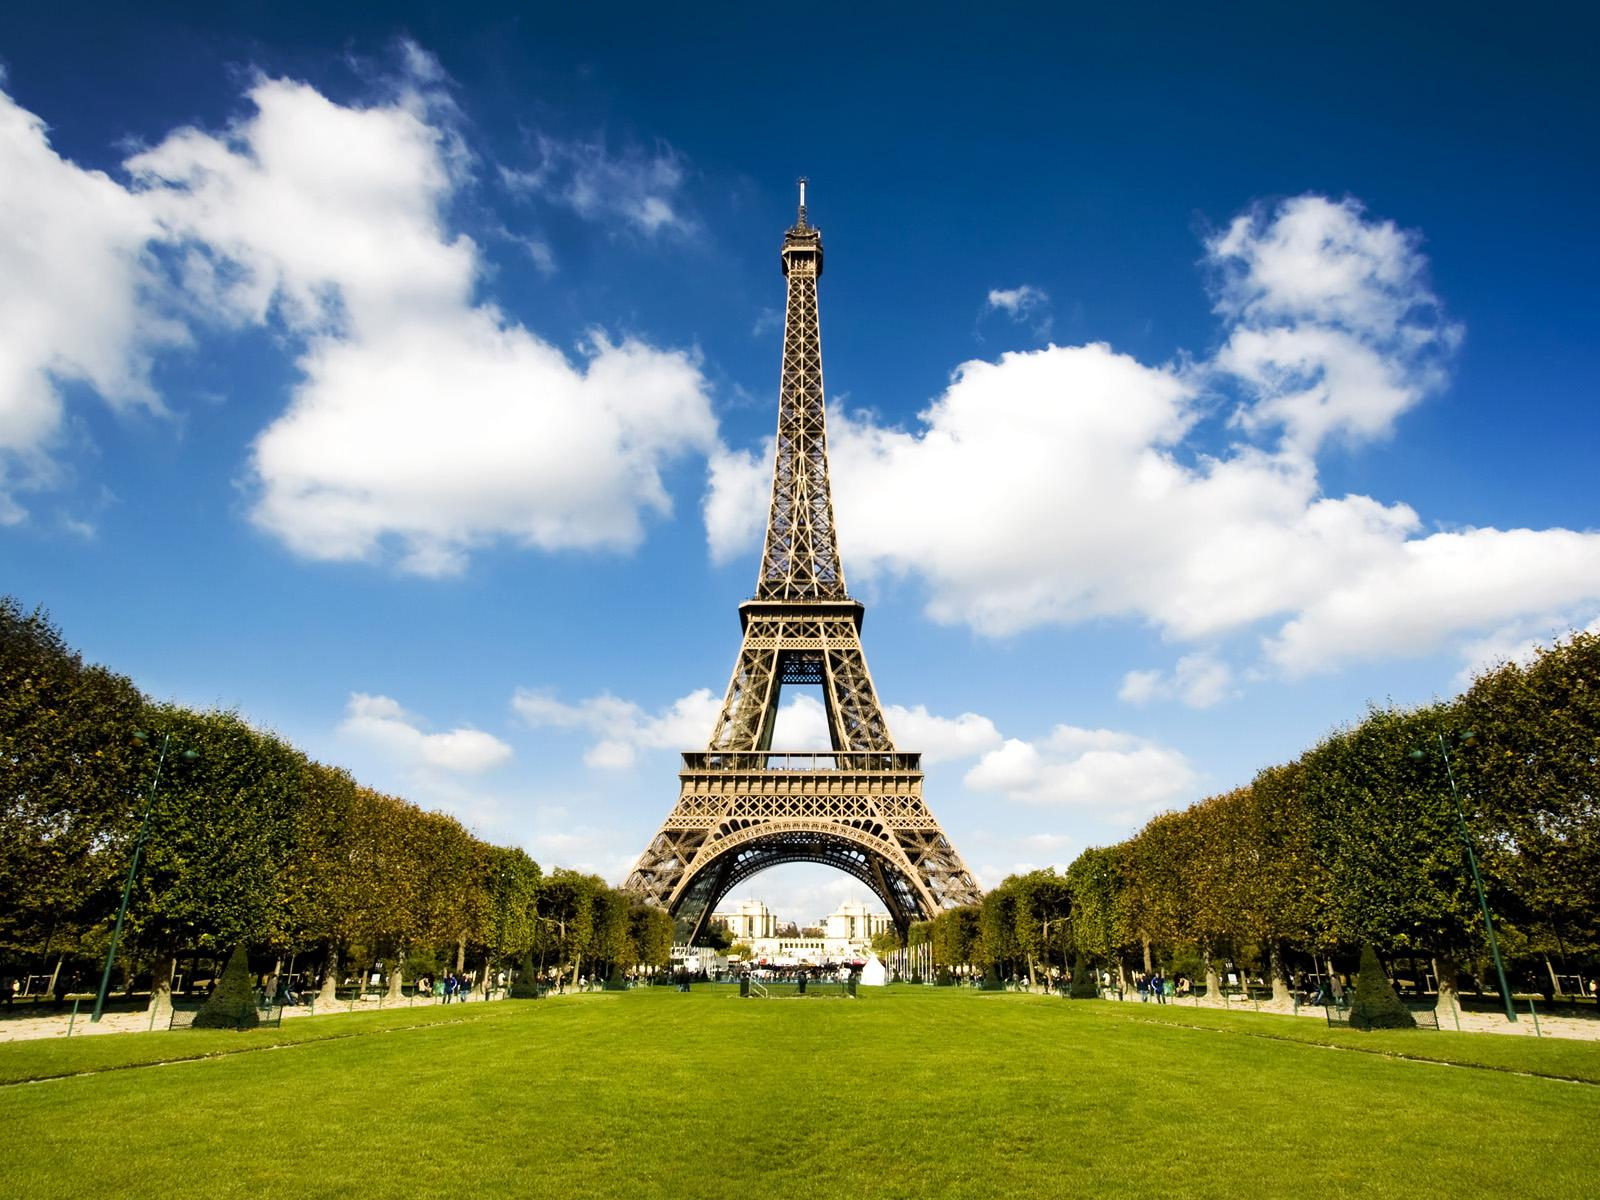 Surprising Truths Facts About Eiffel Tower